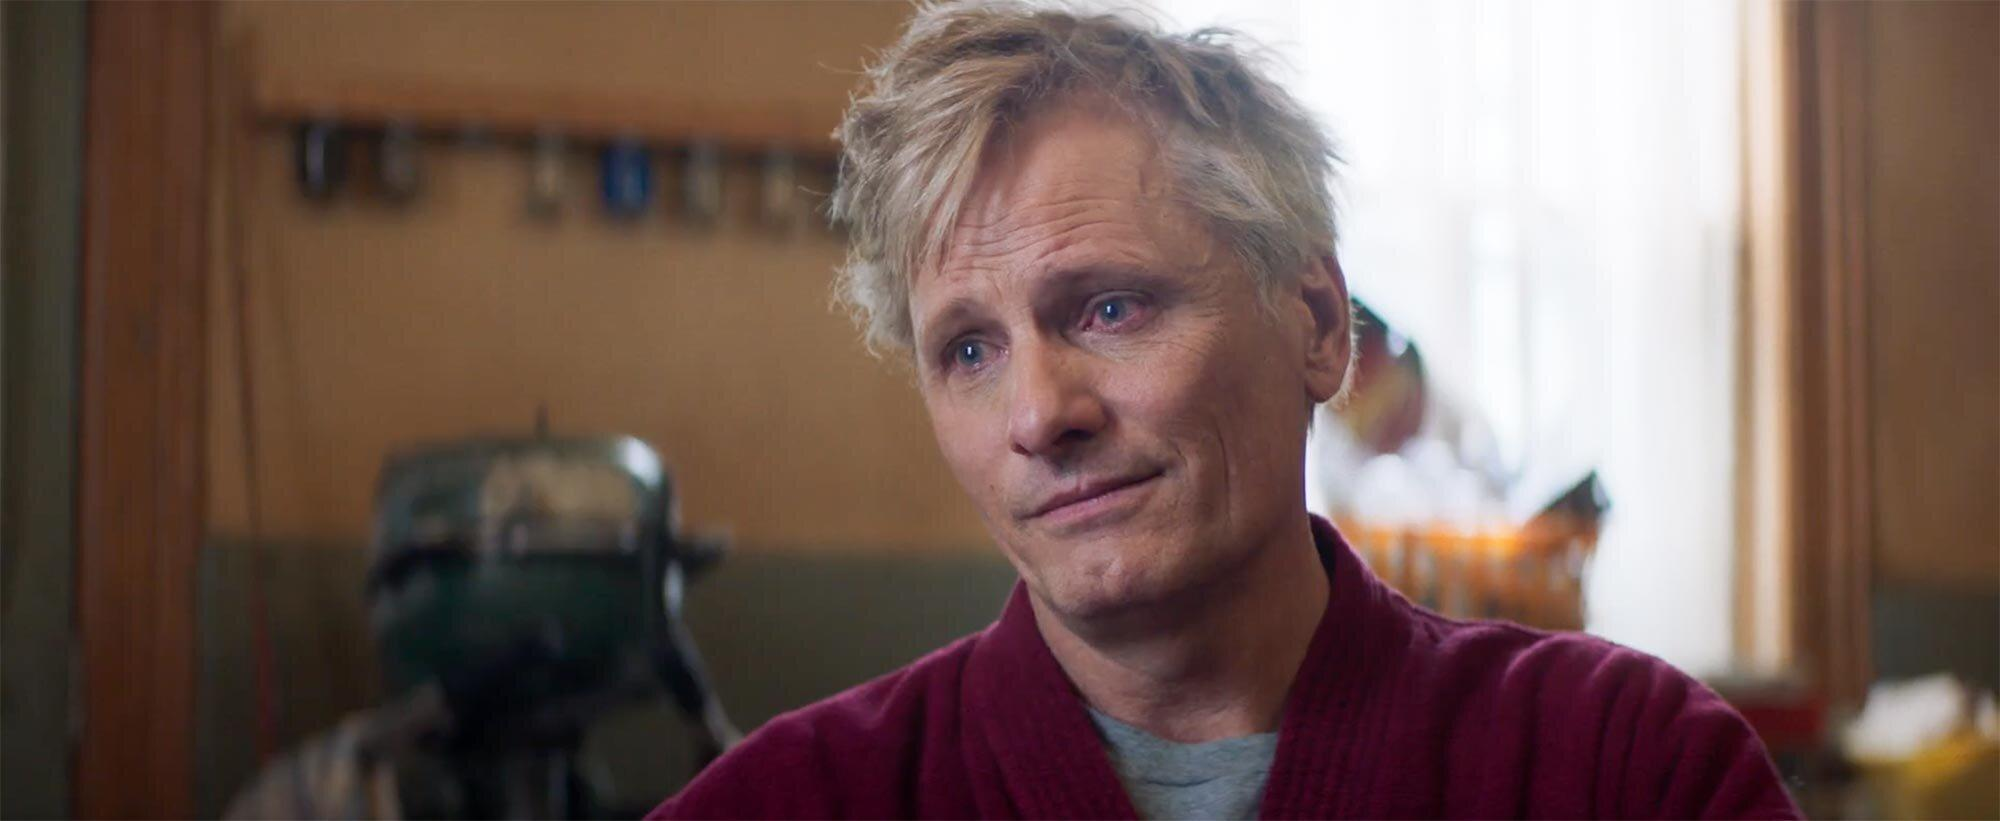 Watch Viggo Mortensen Struggle With Caring For Ailing Homophobic Dad In Falling Trailer